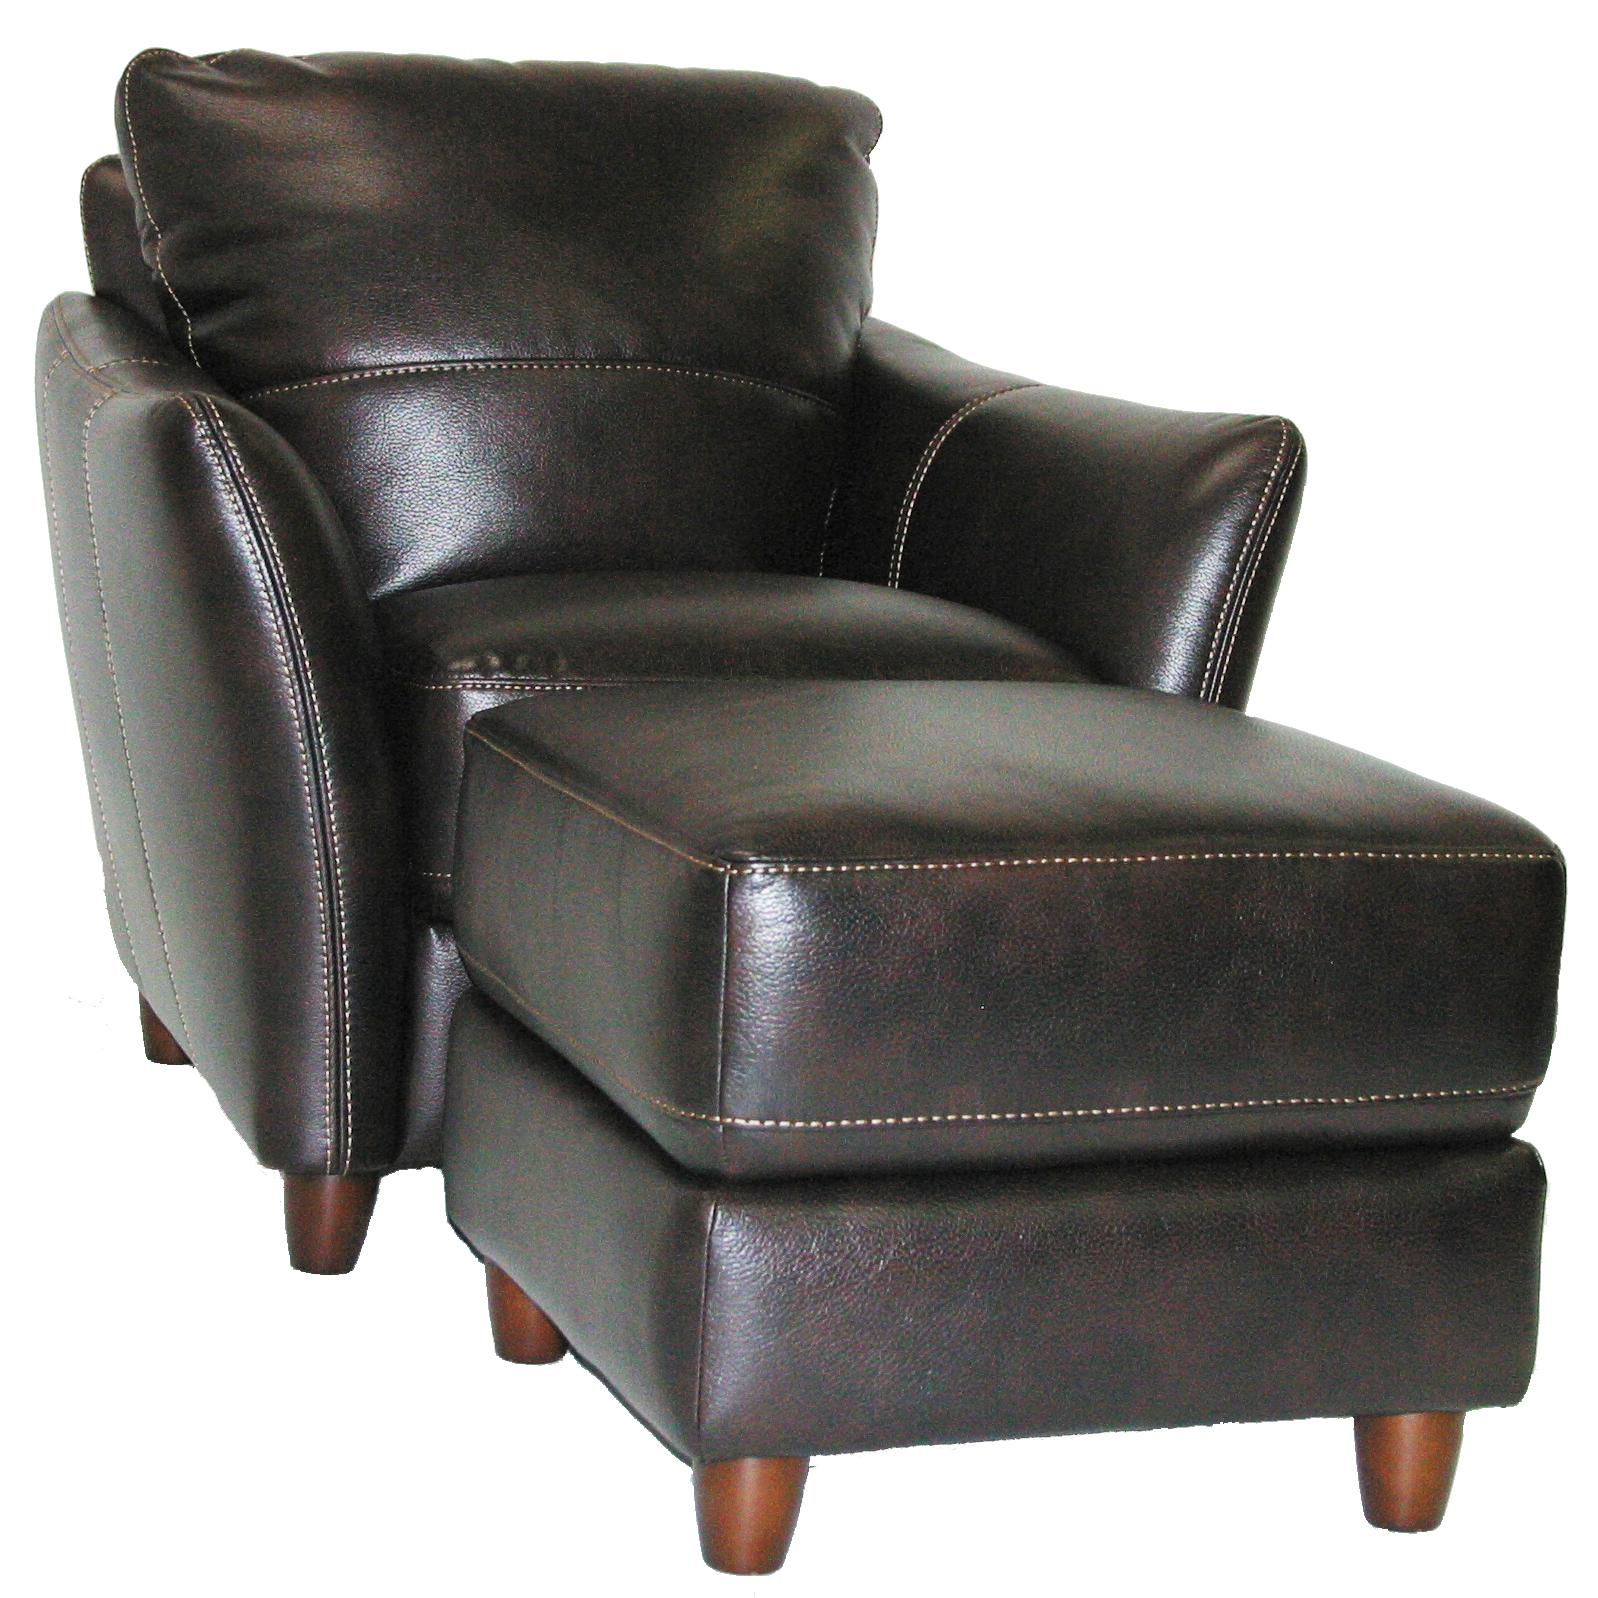 3356 Chair and Ottoman Set by Violino at Furniture Superstore - Rochester, MN